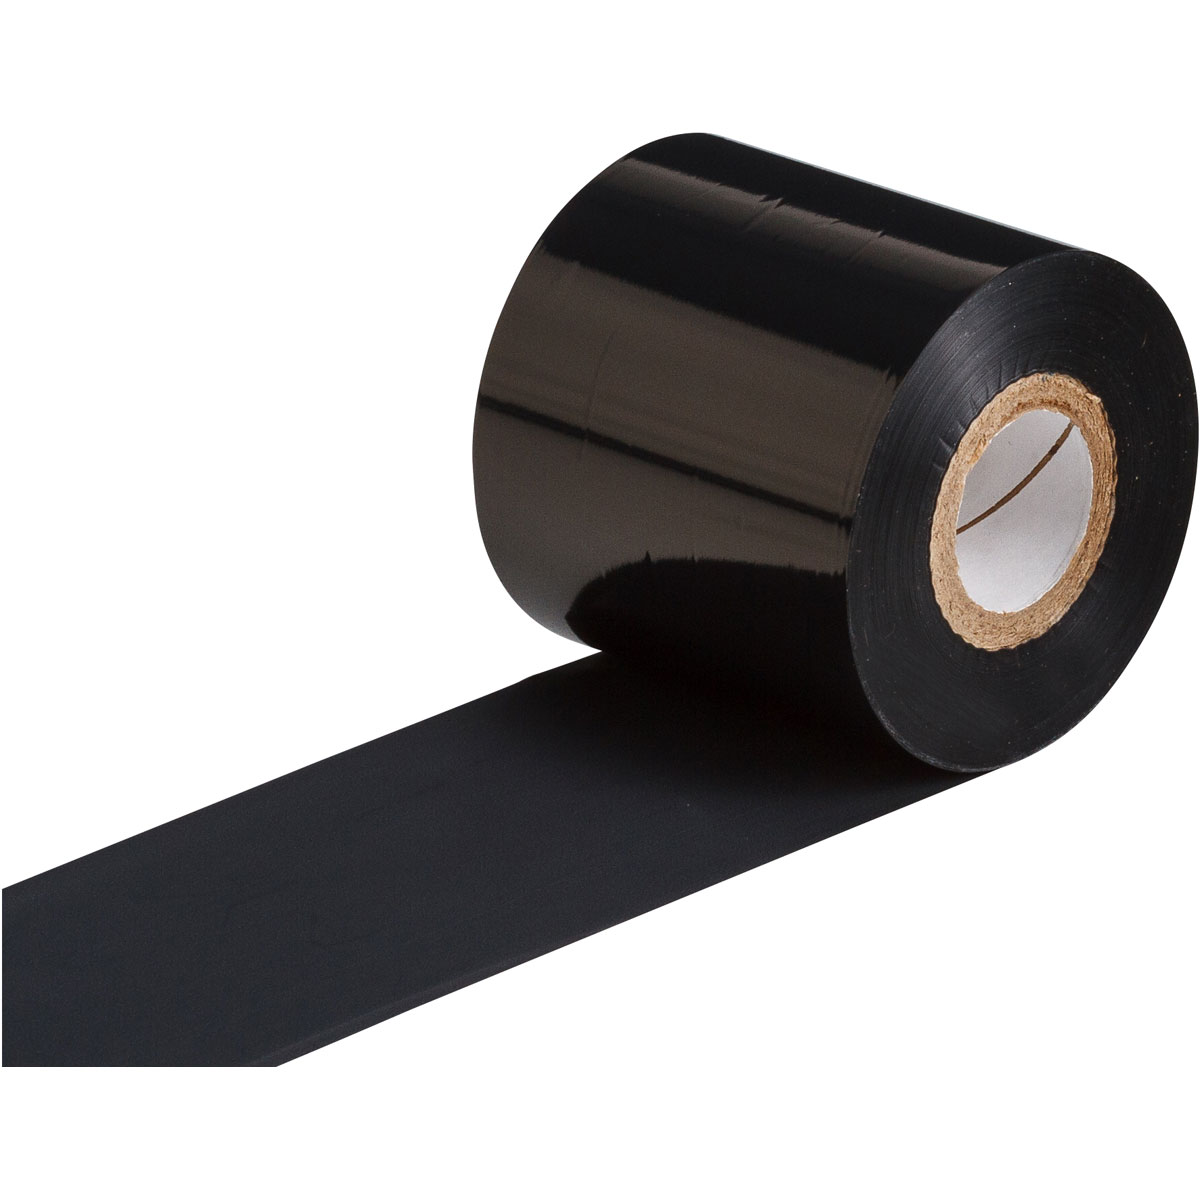 "Brady R6000 Black Thermal Transfer Printer Ribbon, 2.36"" x 984'"